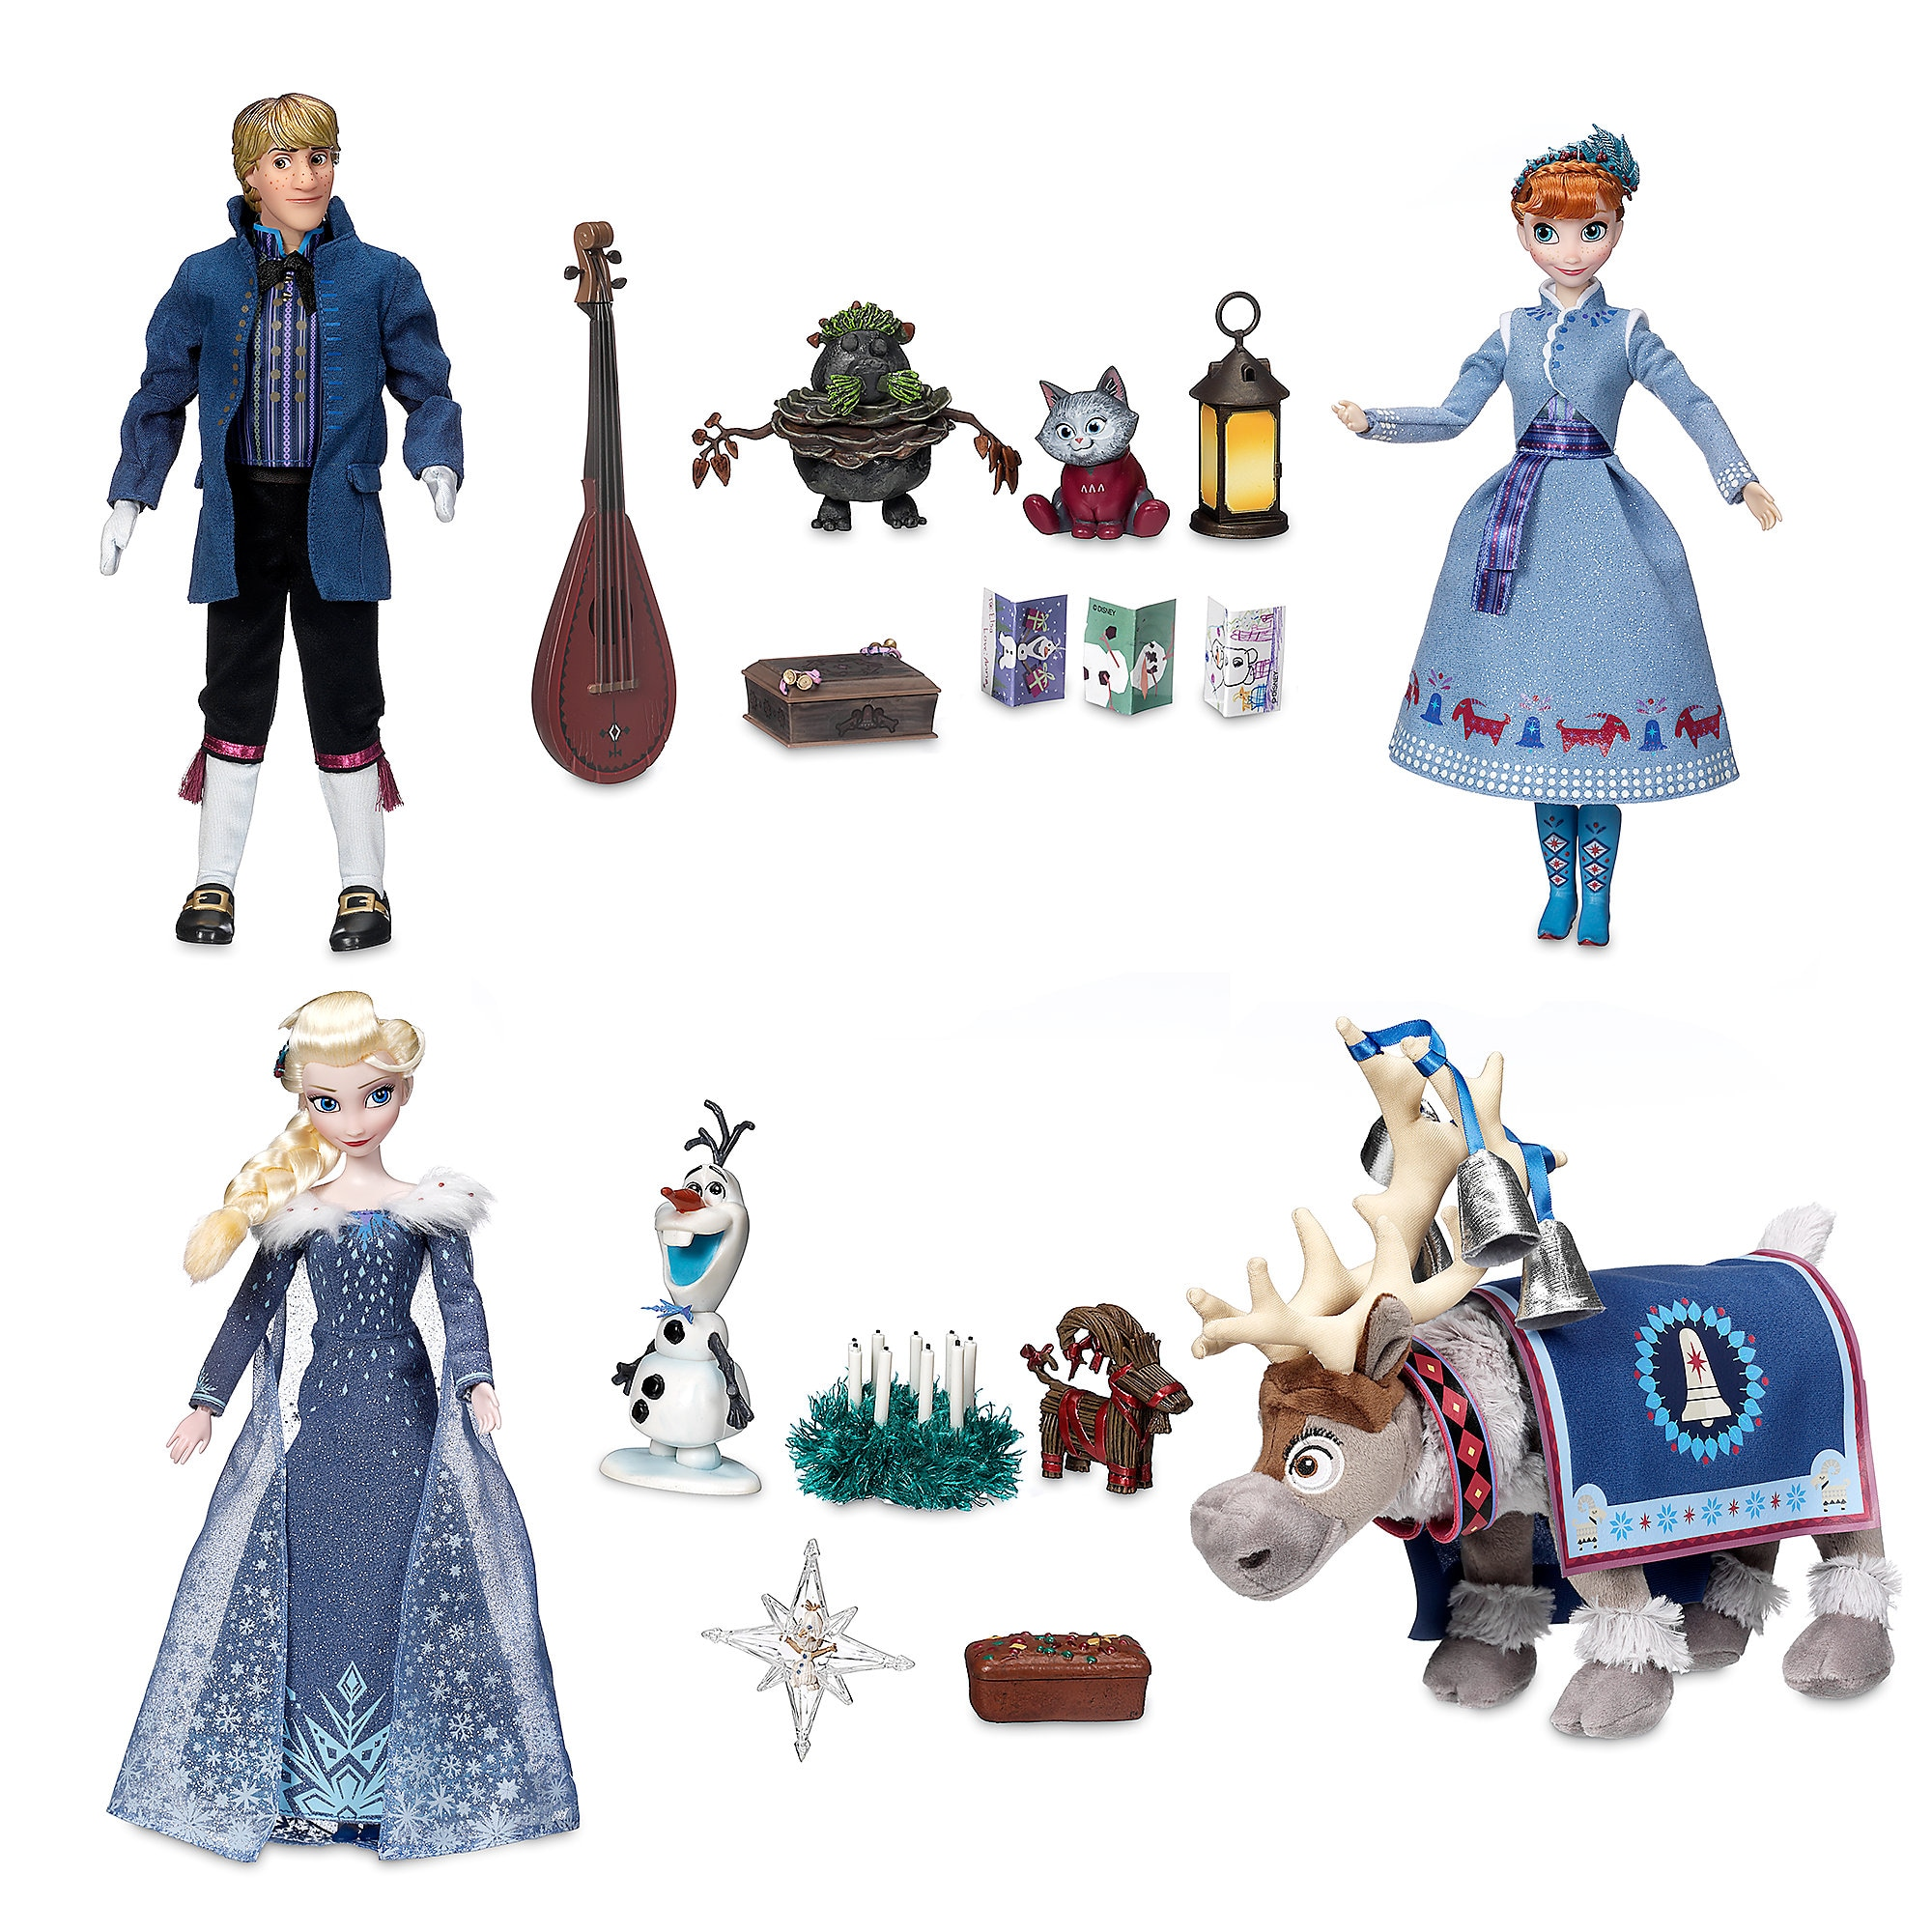 Olaf's Frozen Adventure Singing Doll Gift Set